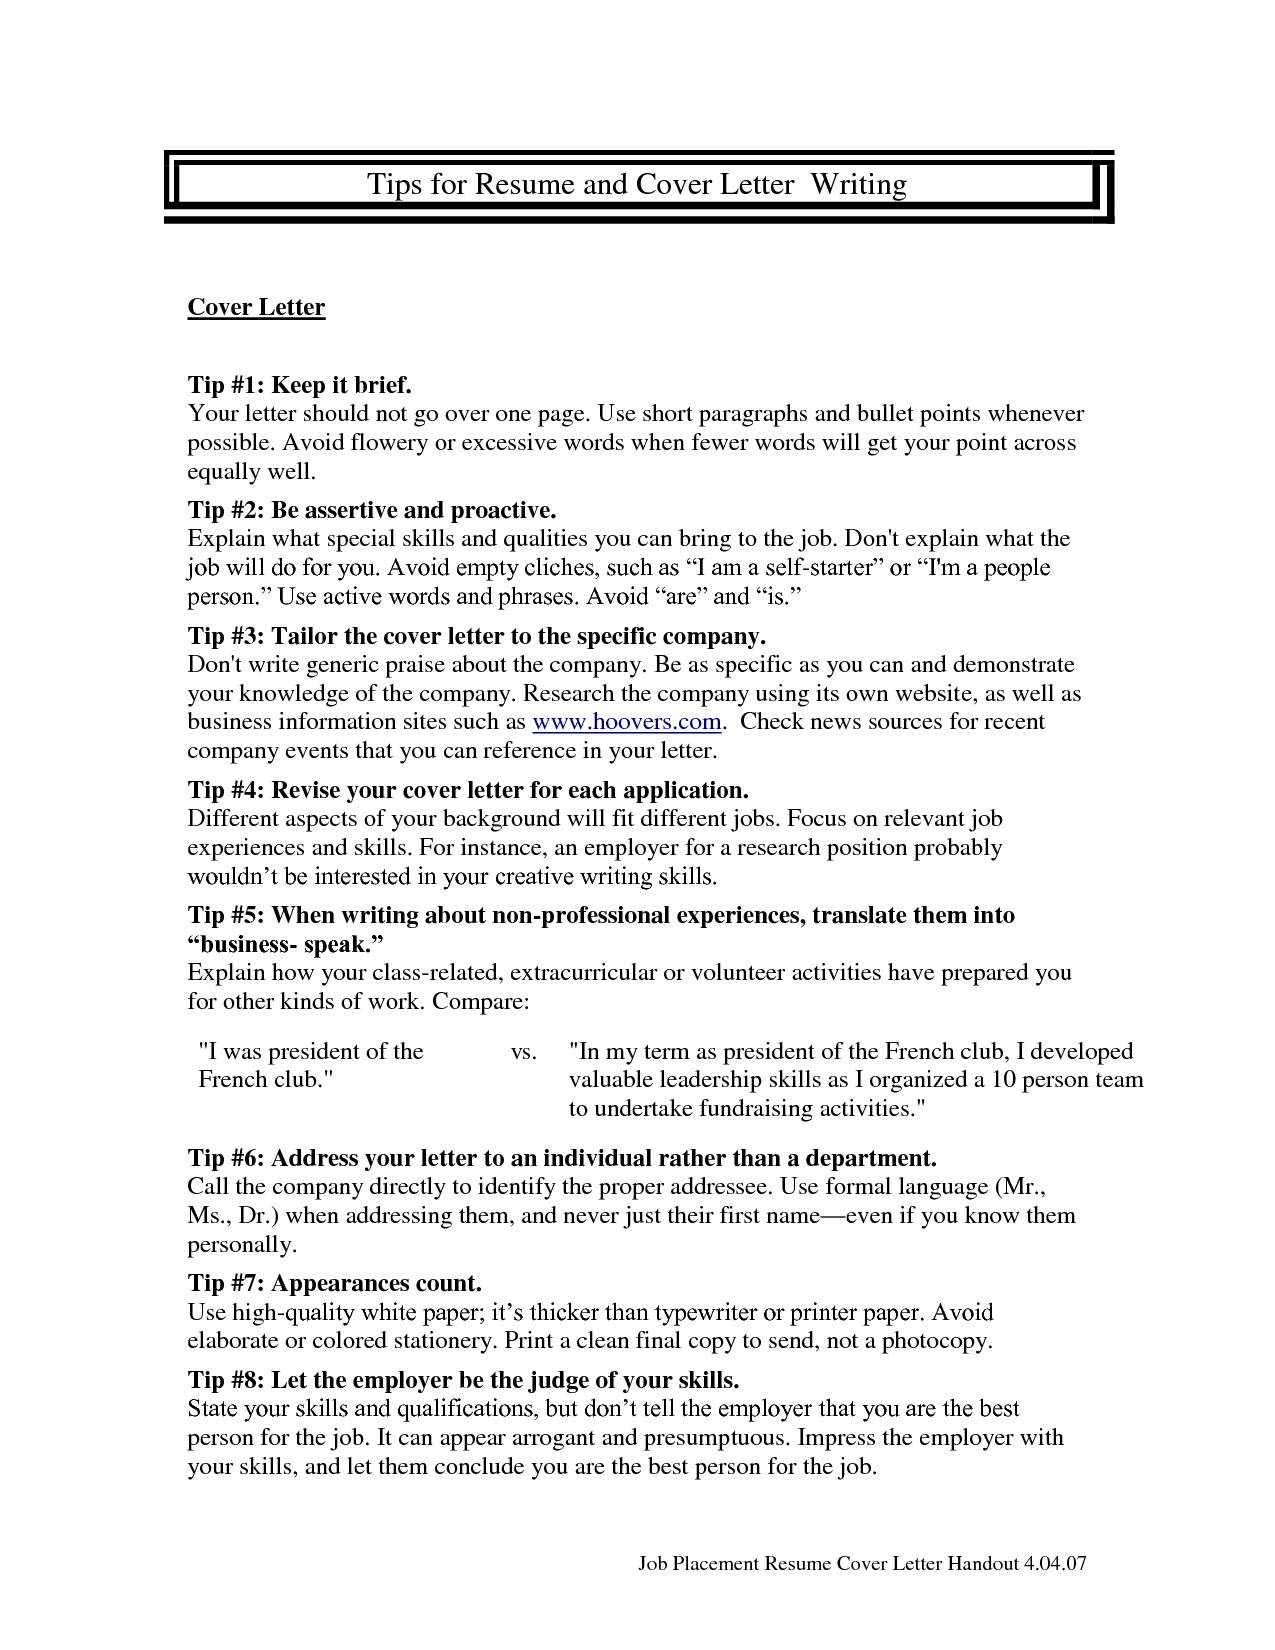 Bullet Point Resume Template Resume Cover Letter Download Now